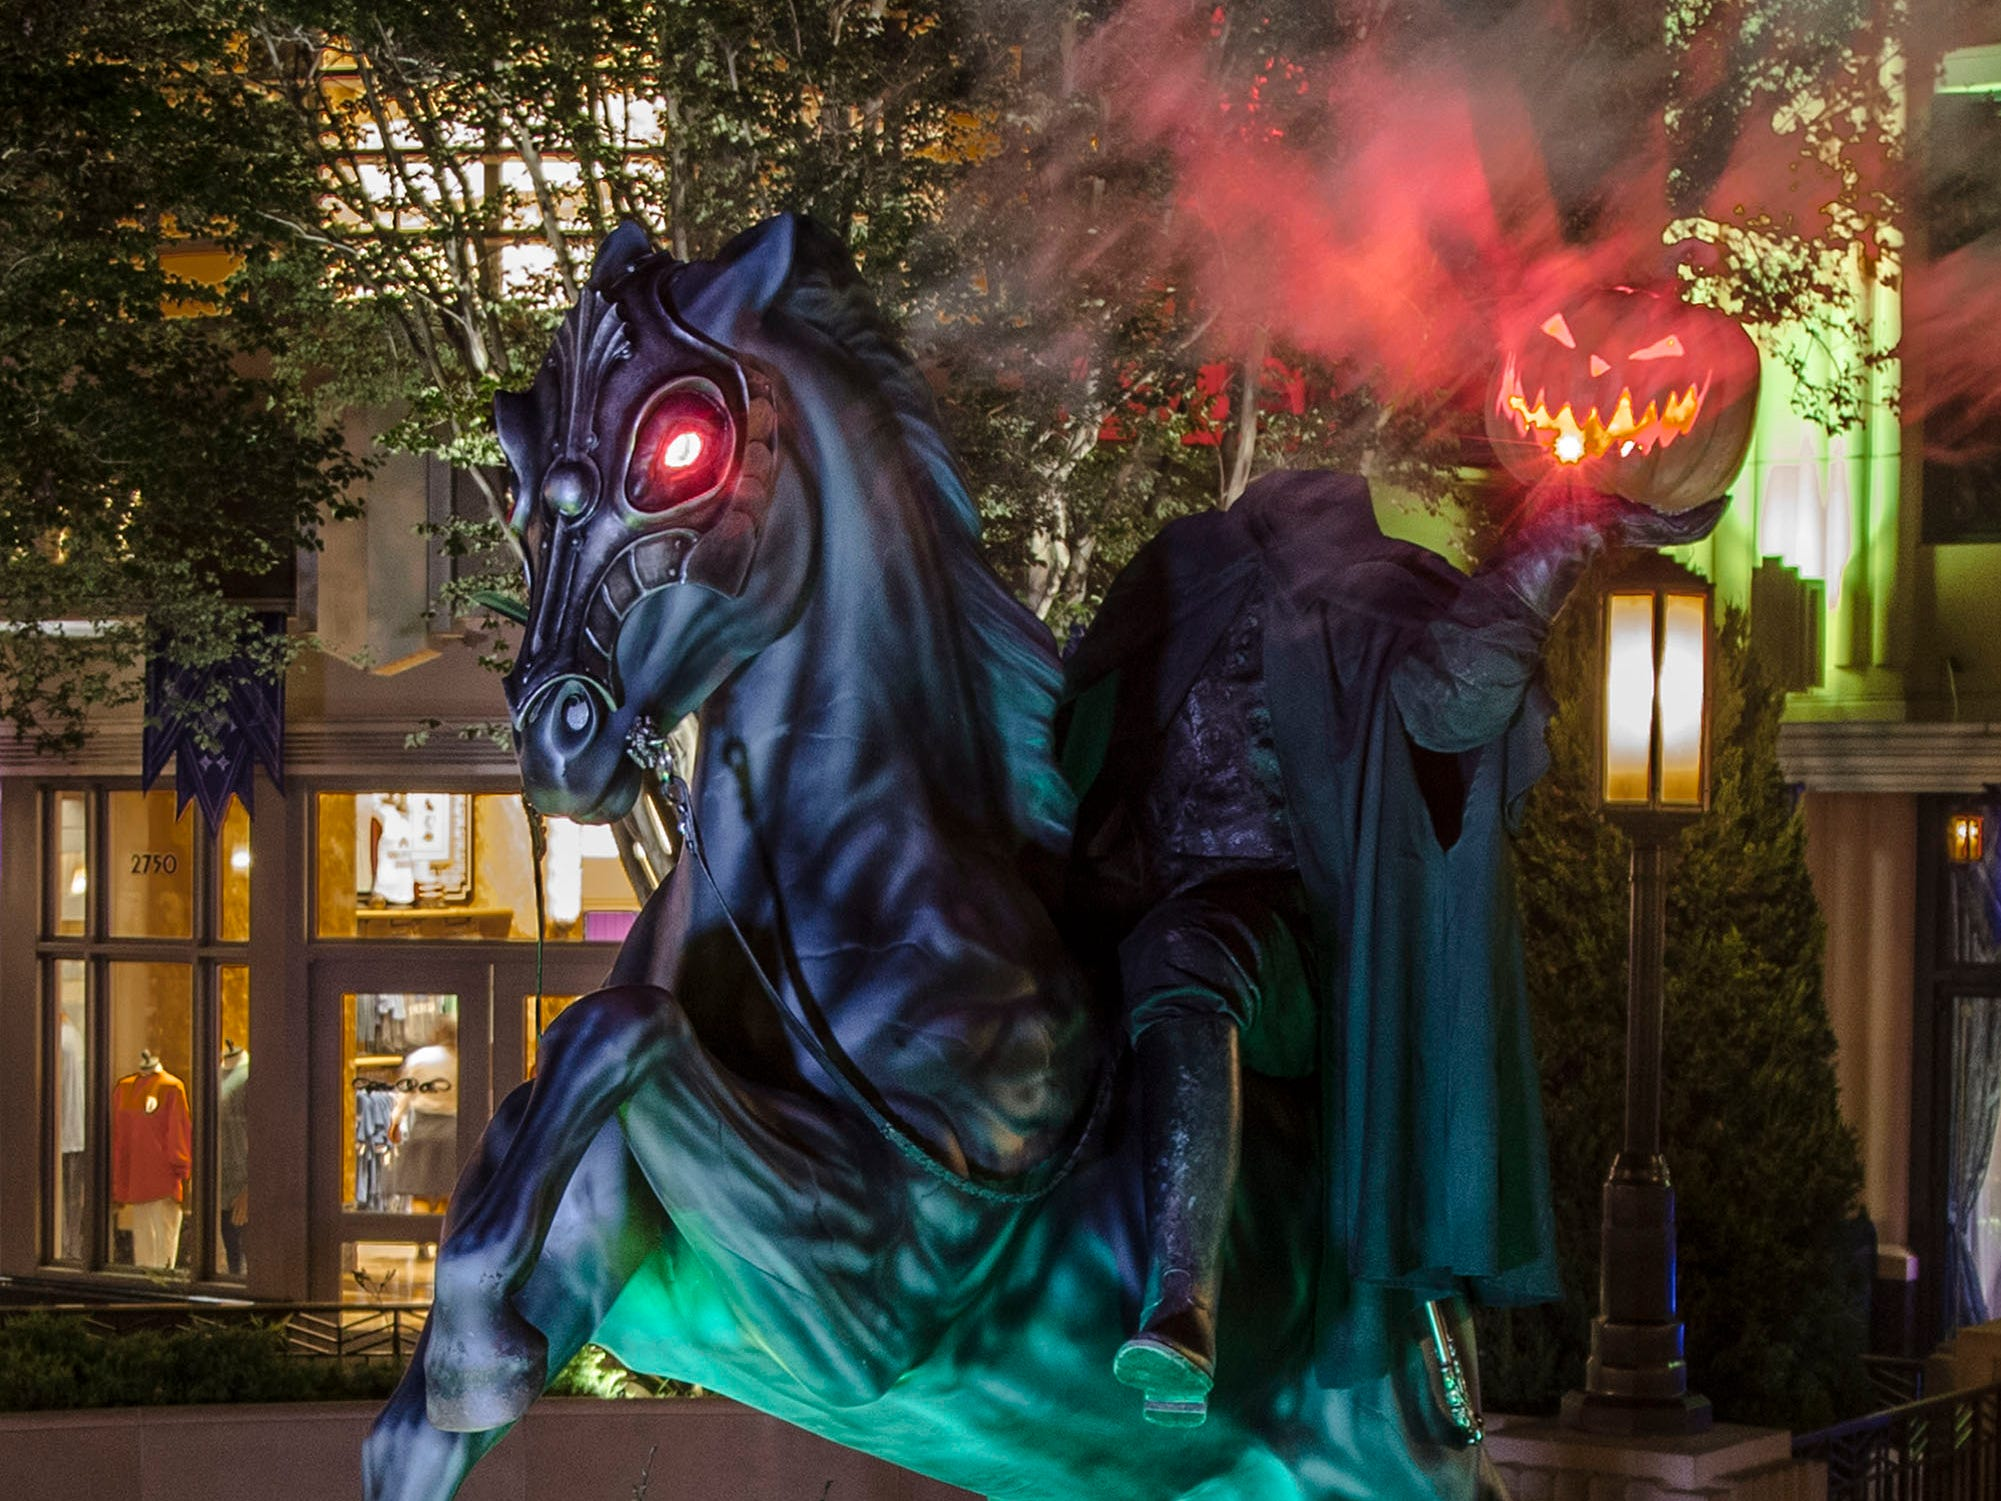 On Buena Vista Street at Disney California Adventure, guests will see a 10-foot-tall statue of the Headless Horseman, holding his jack-o'-lantern head to the sky.